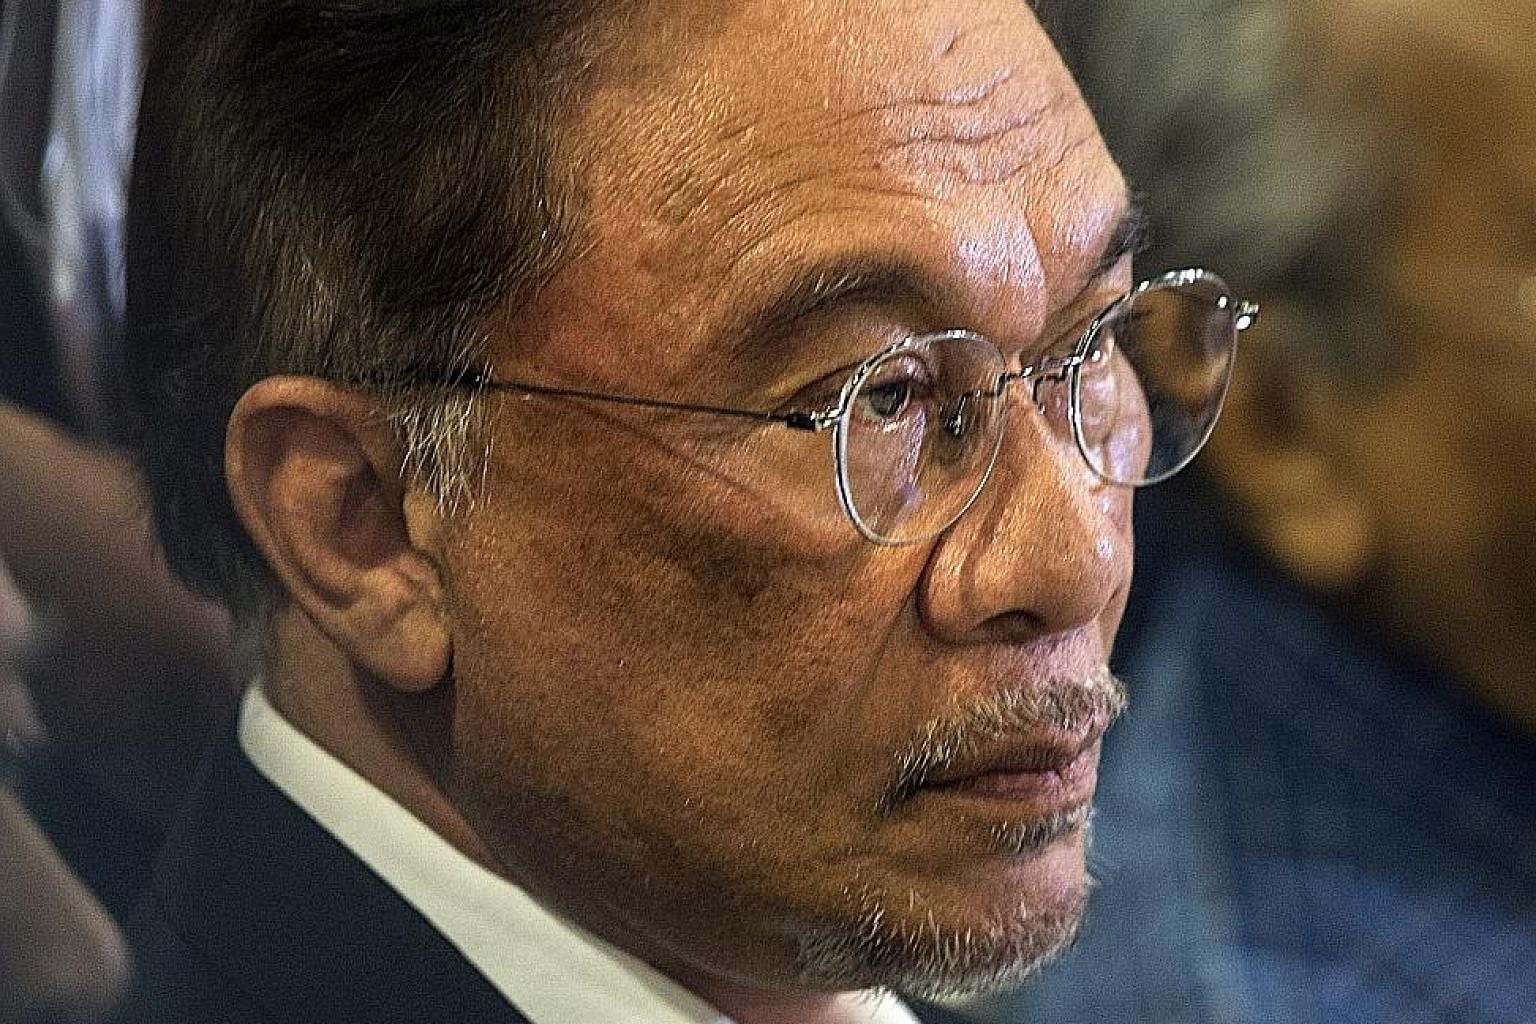 The allegations involving PKR president Anwar Ibrahim (left) were made by his former assistant, Mr Muhammed Yusoff Rawther.